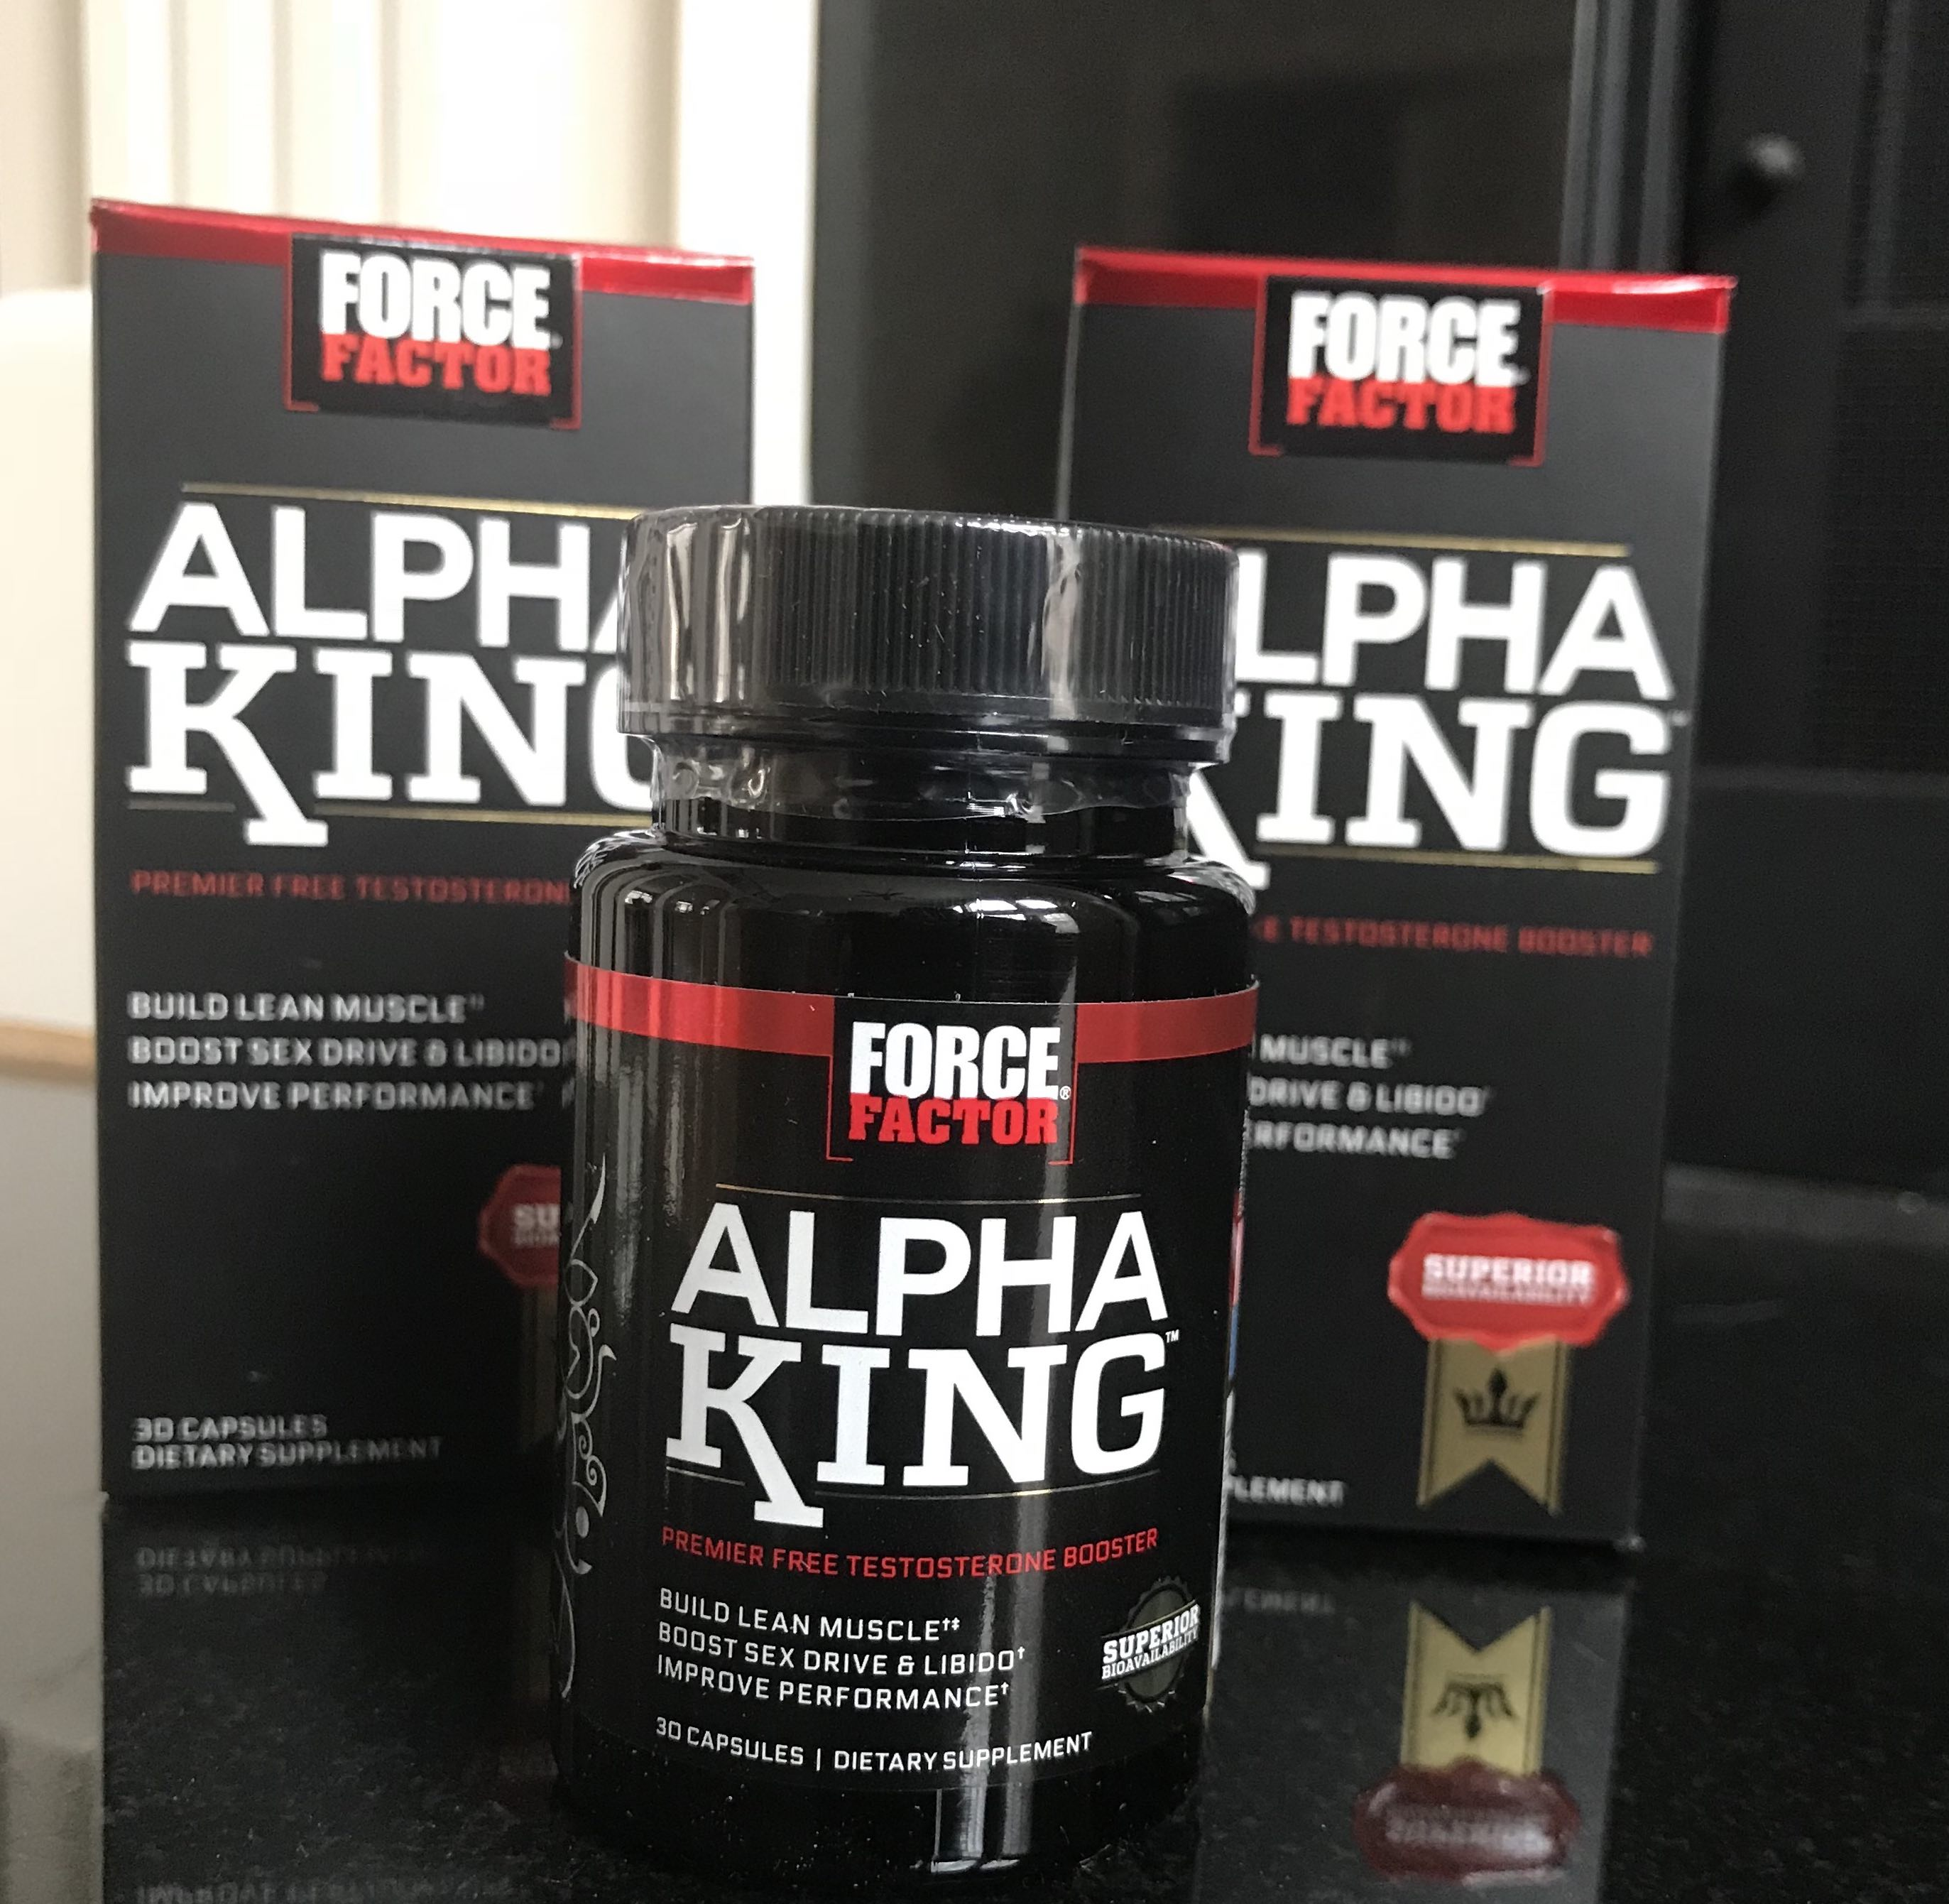 Alpha King Review: What Can You Expect from This